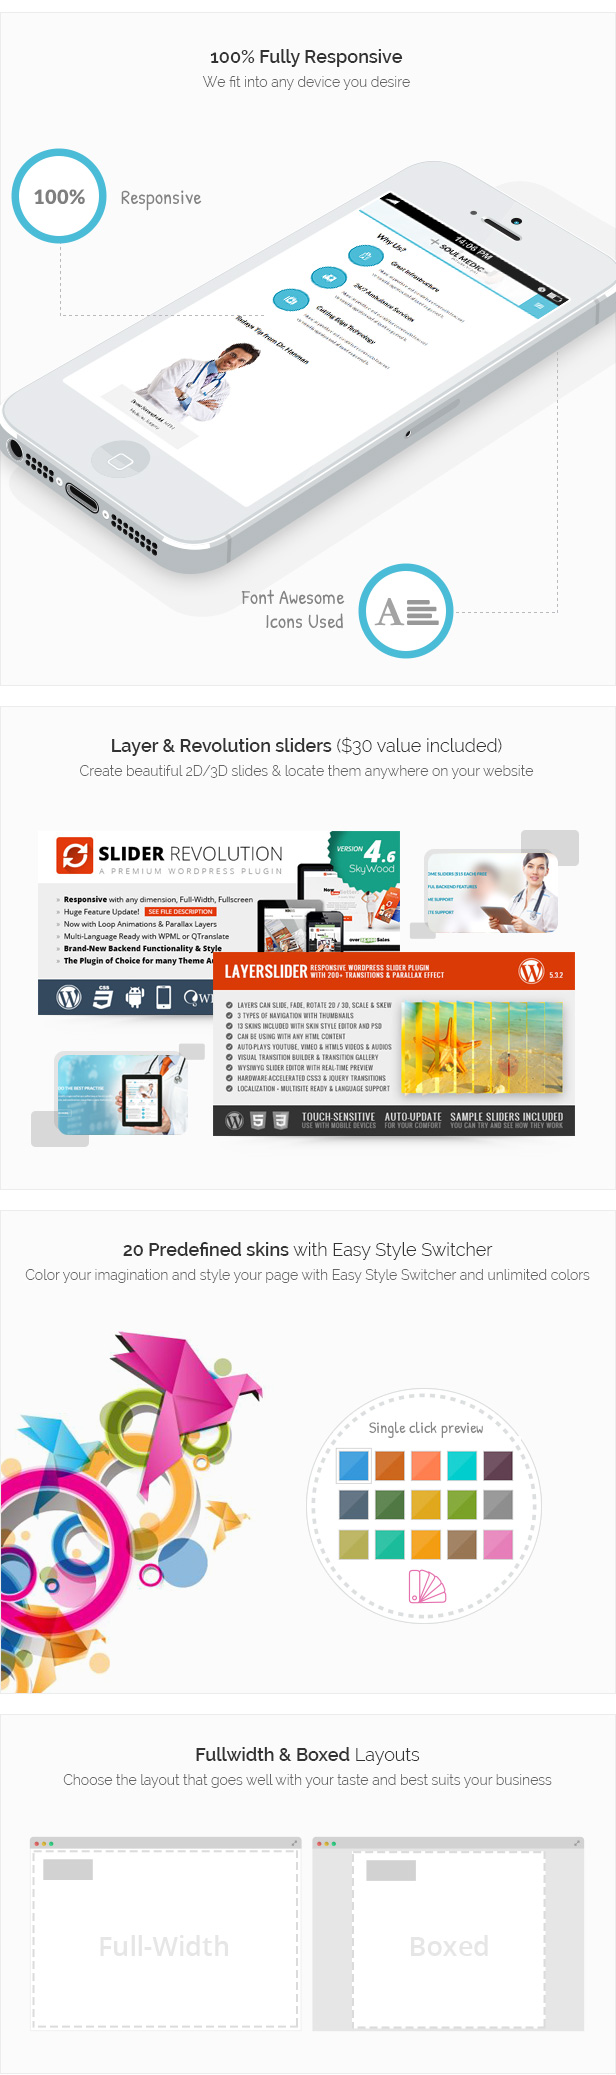 SoulMedic | Hospital & Doctor WordPress Theme - 4